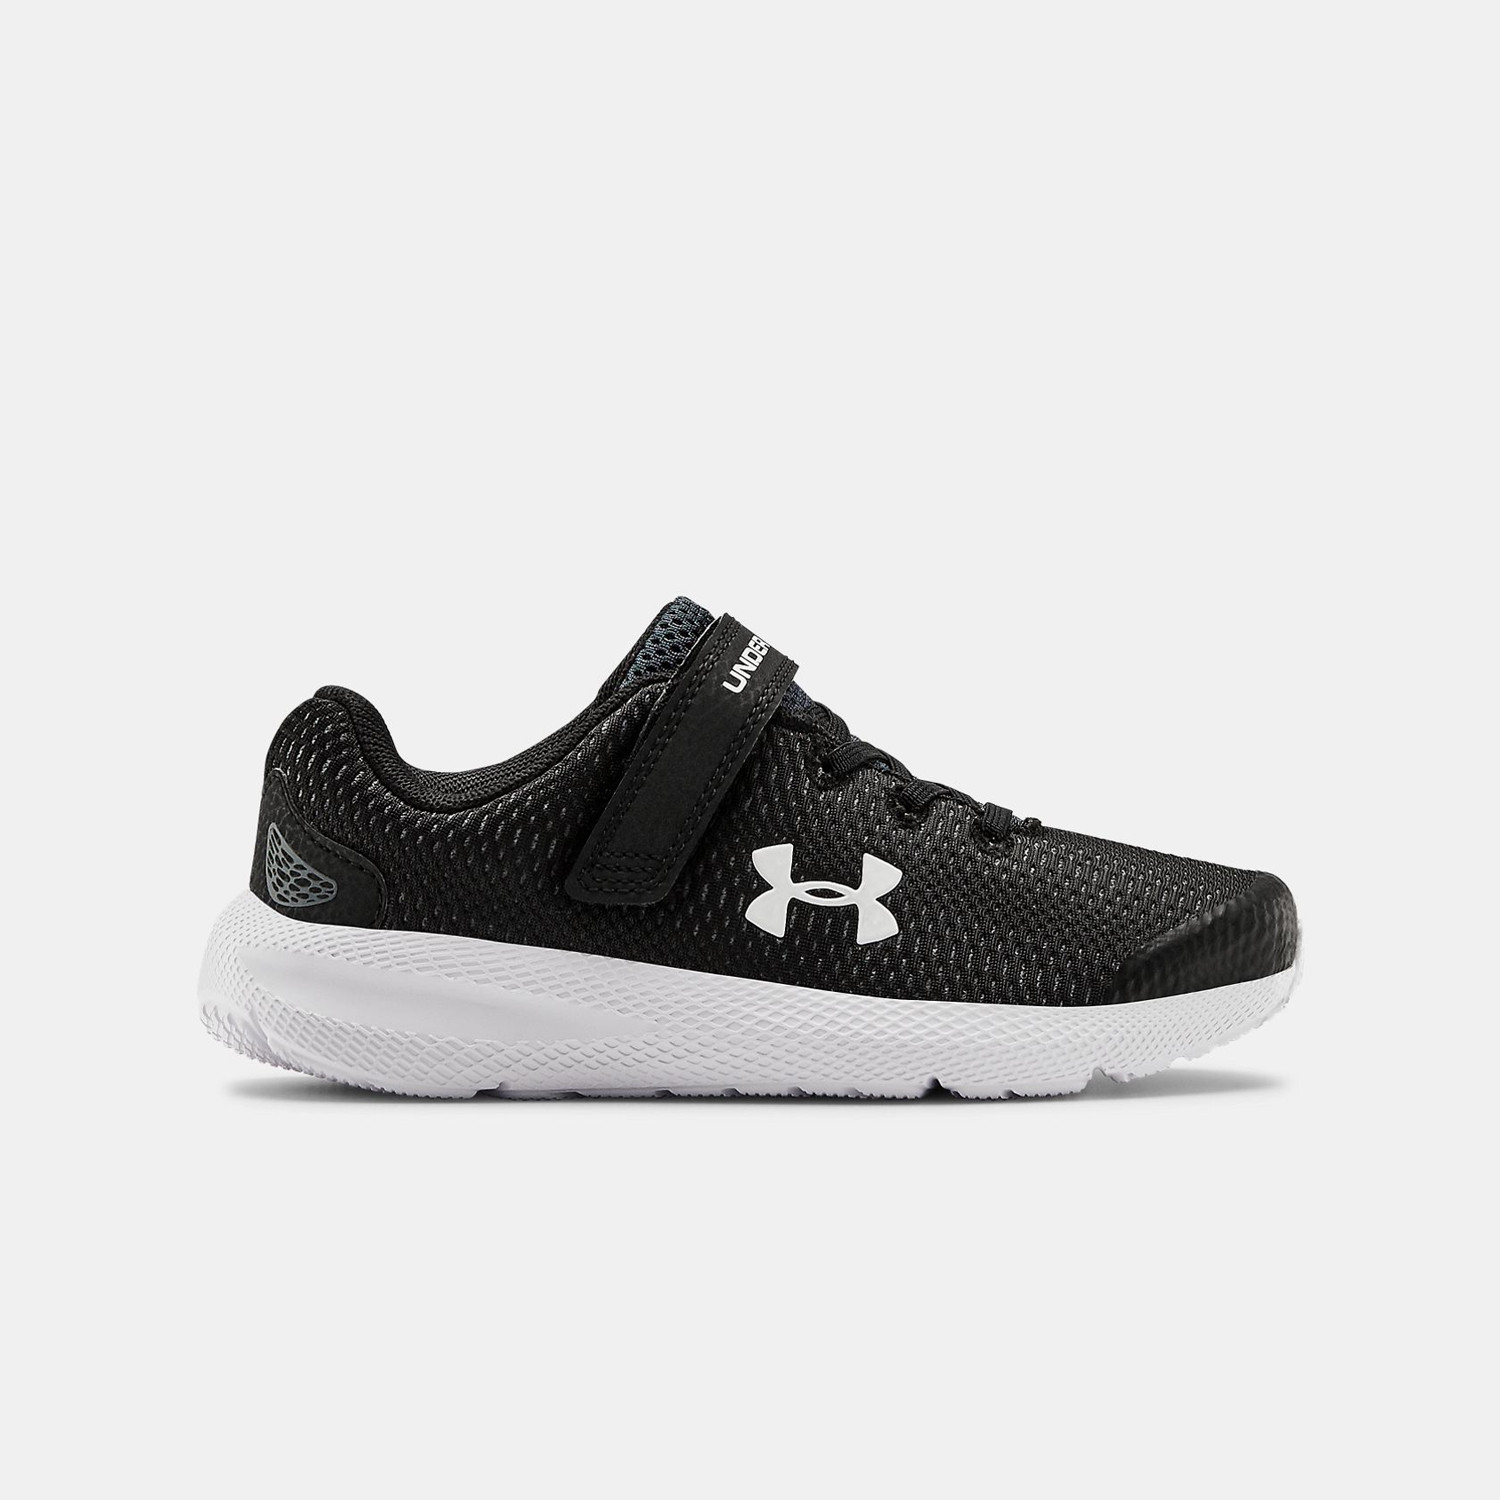 Under Armour Pre School Ua Pursuit 2 Youth Shoes (9000047793_8509)